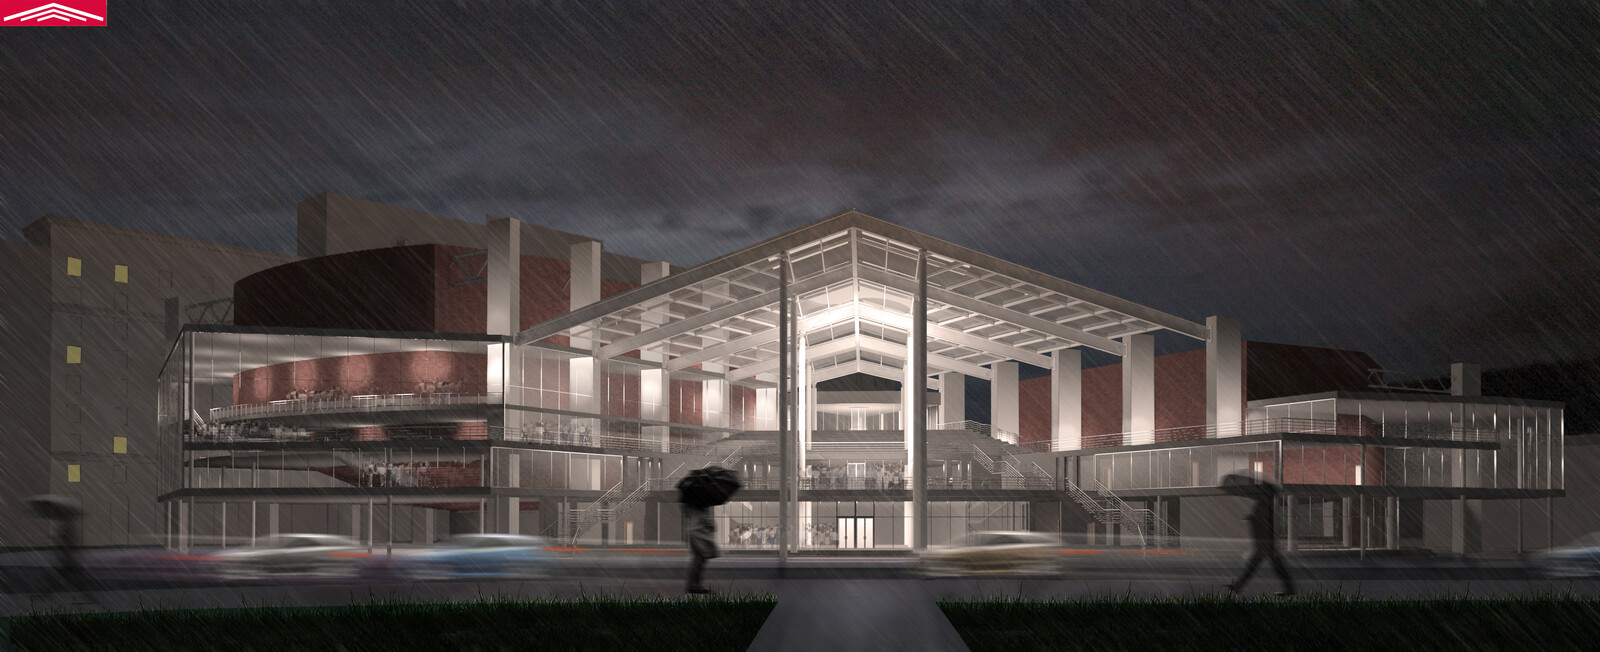 Concert Hall project. Facade. (MArchI, 2013)